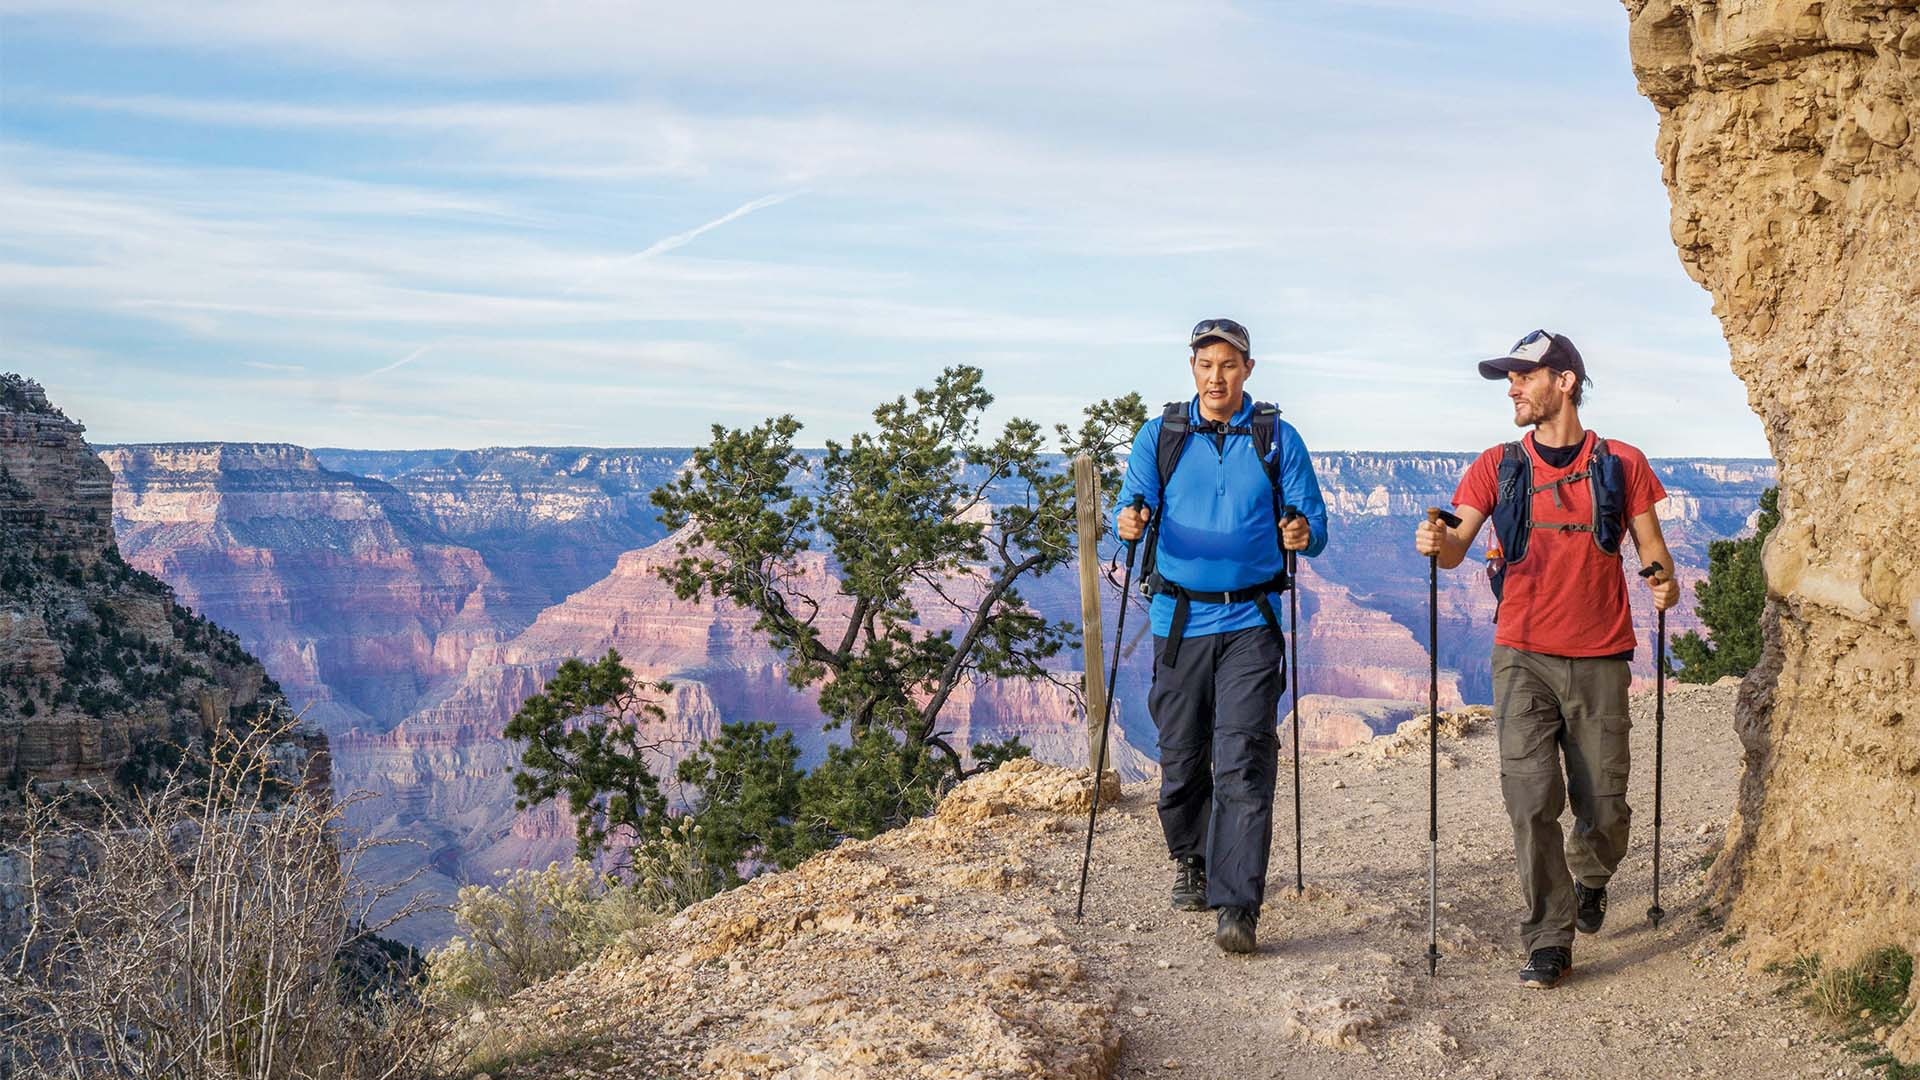 Hikers taking on the Grand Canyon's rim to rim trail